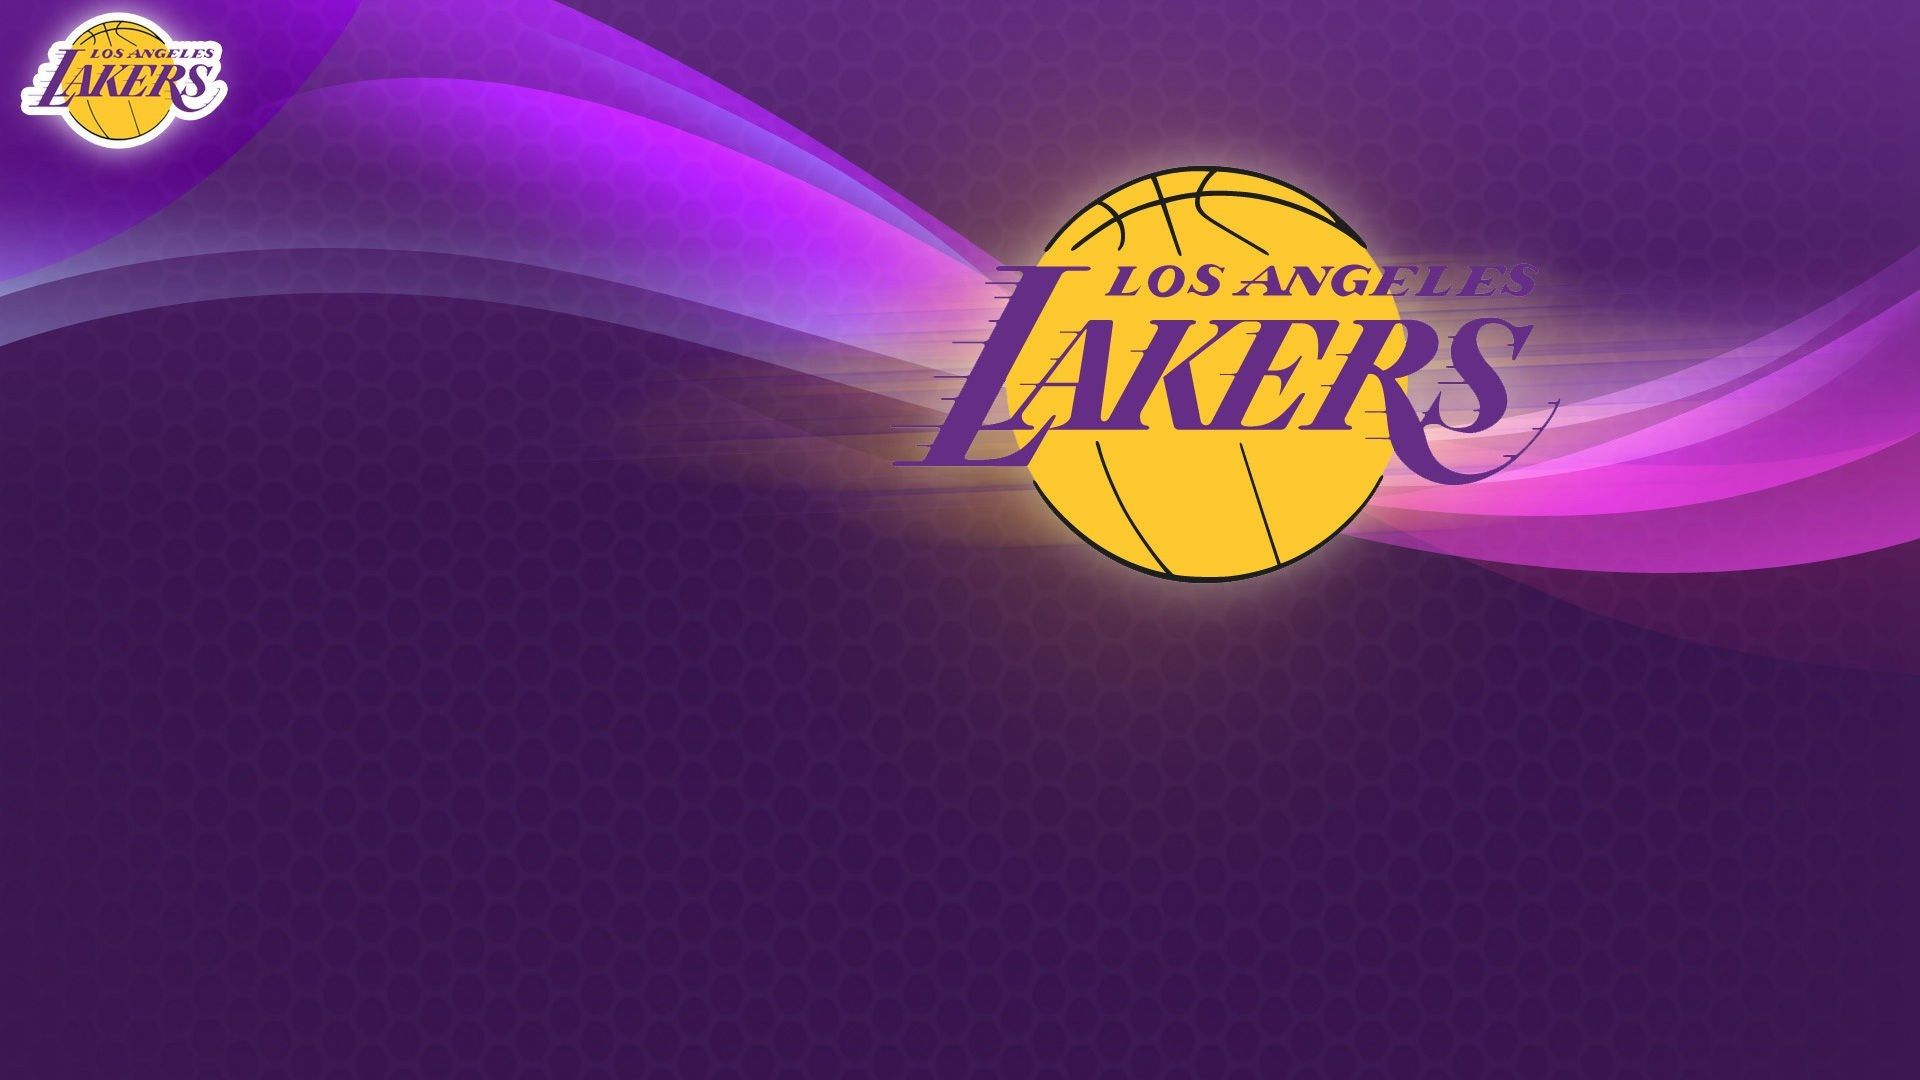 La Lakers Desktop Wallpapers Lakers Wallpaper Lakers Logo La Lakers